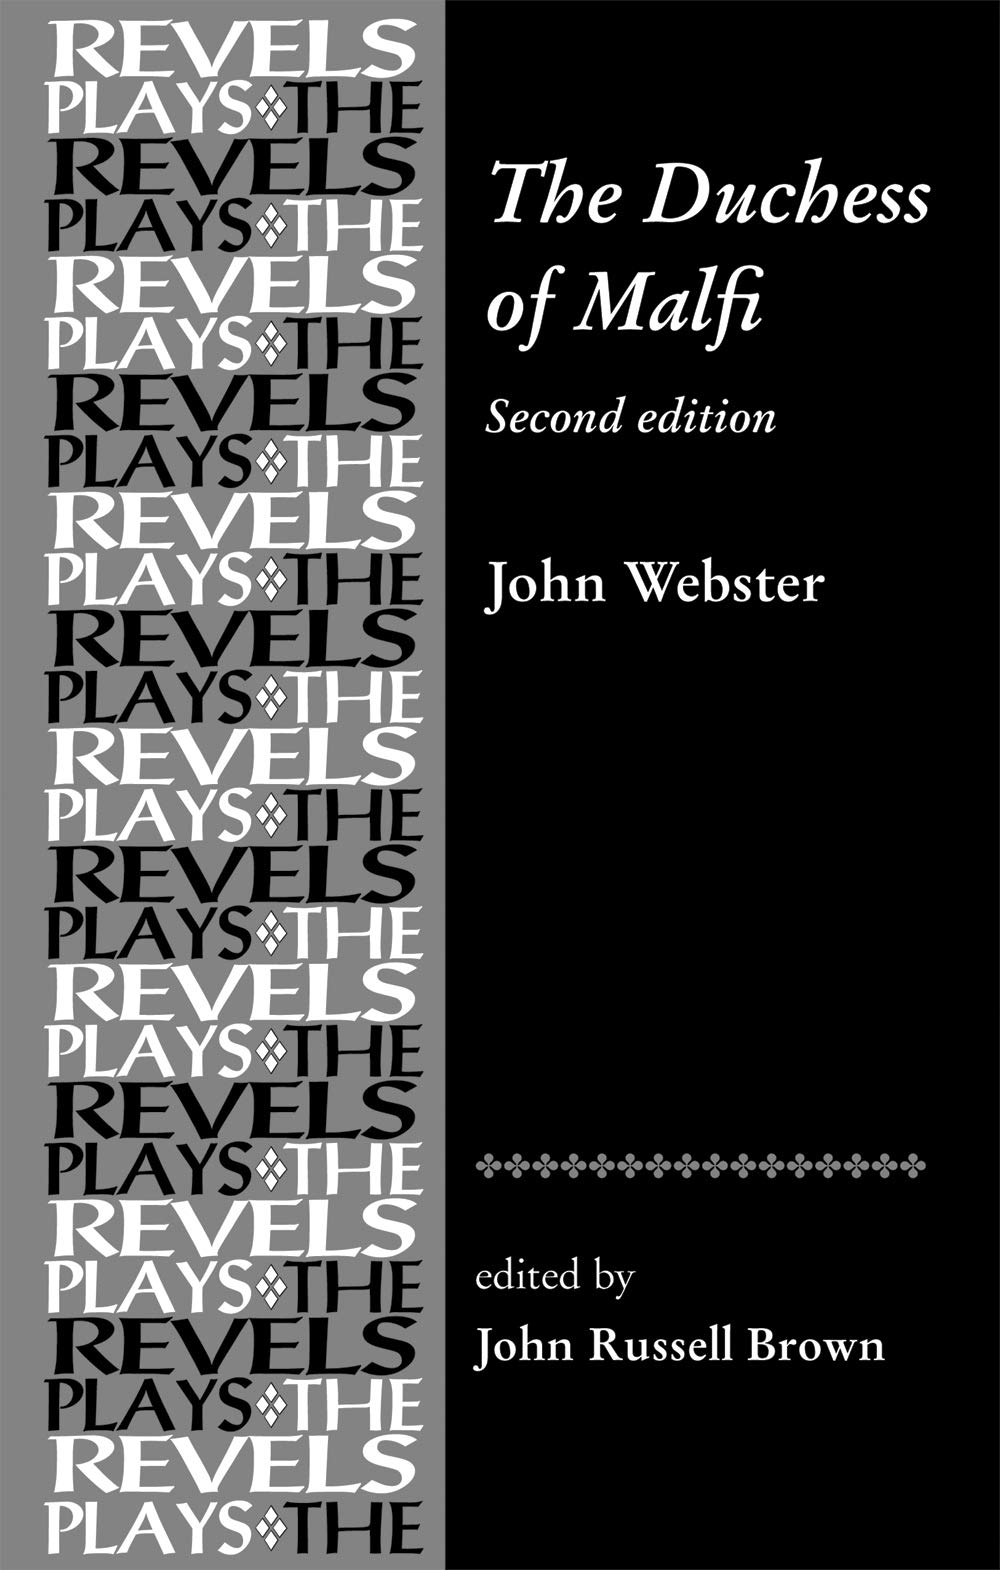 The Duchess Of Malfi  By John Webster  The Revels Plays